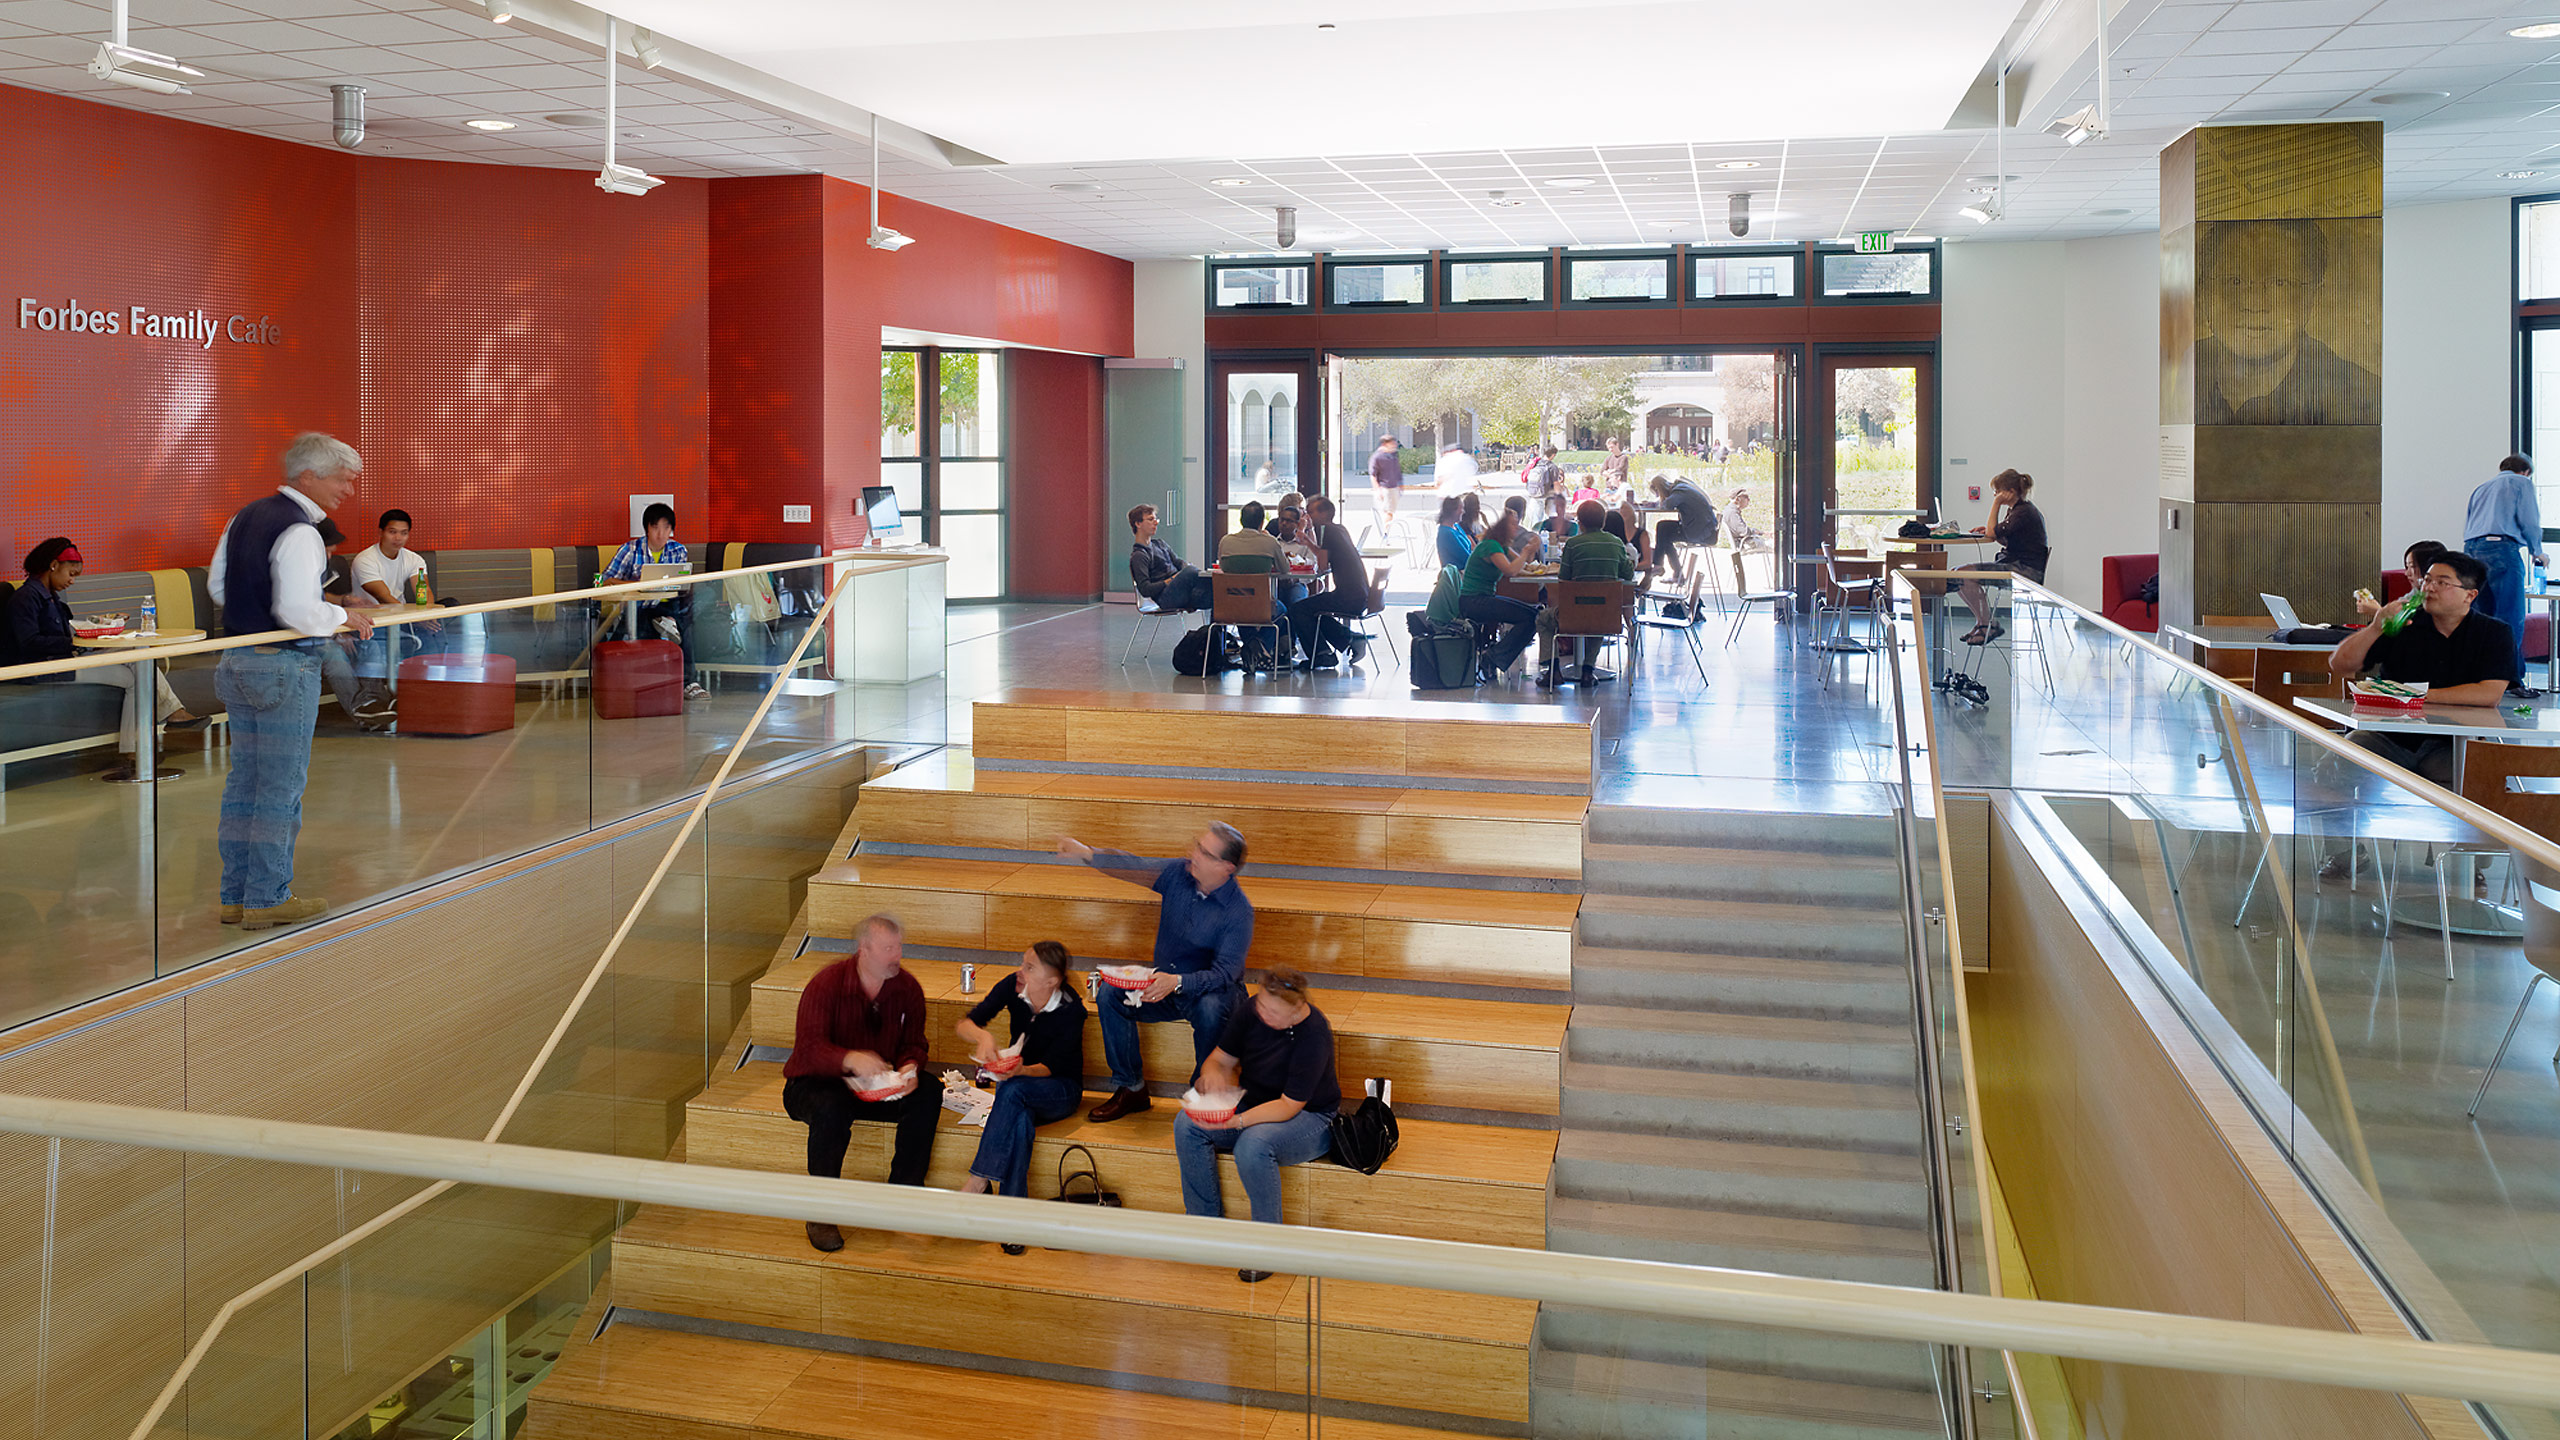 Jen-Hsun Huang Engineering Center – Stanford University image 5